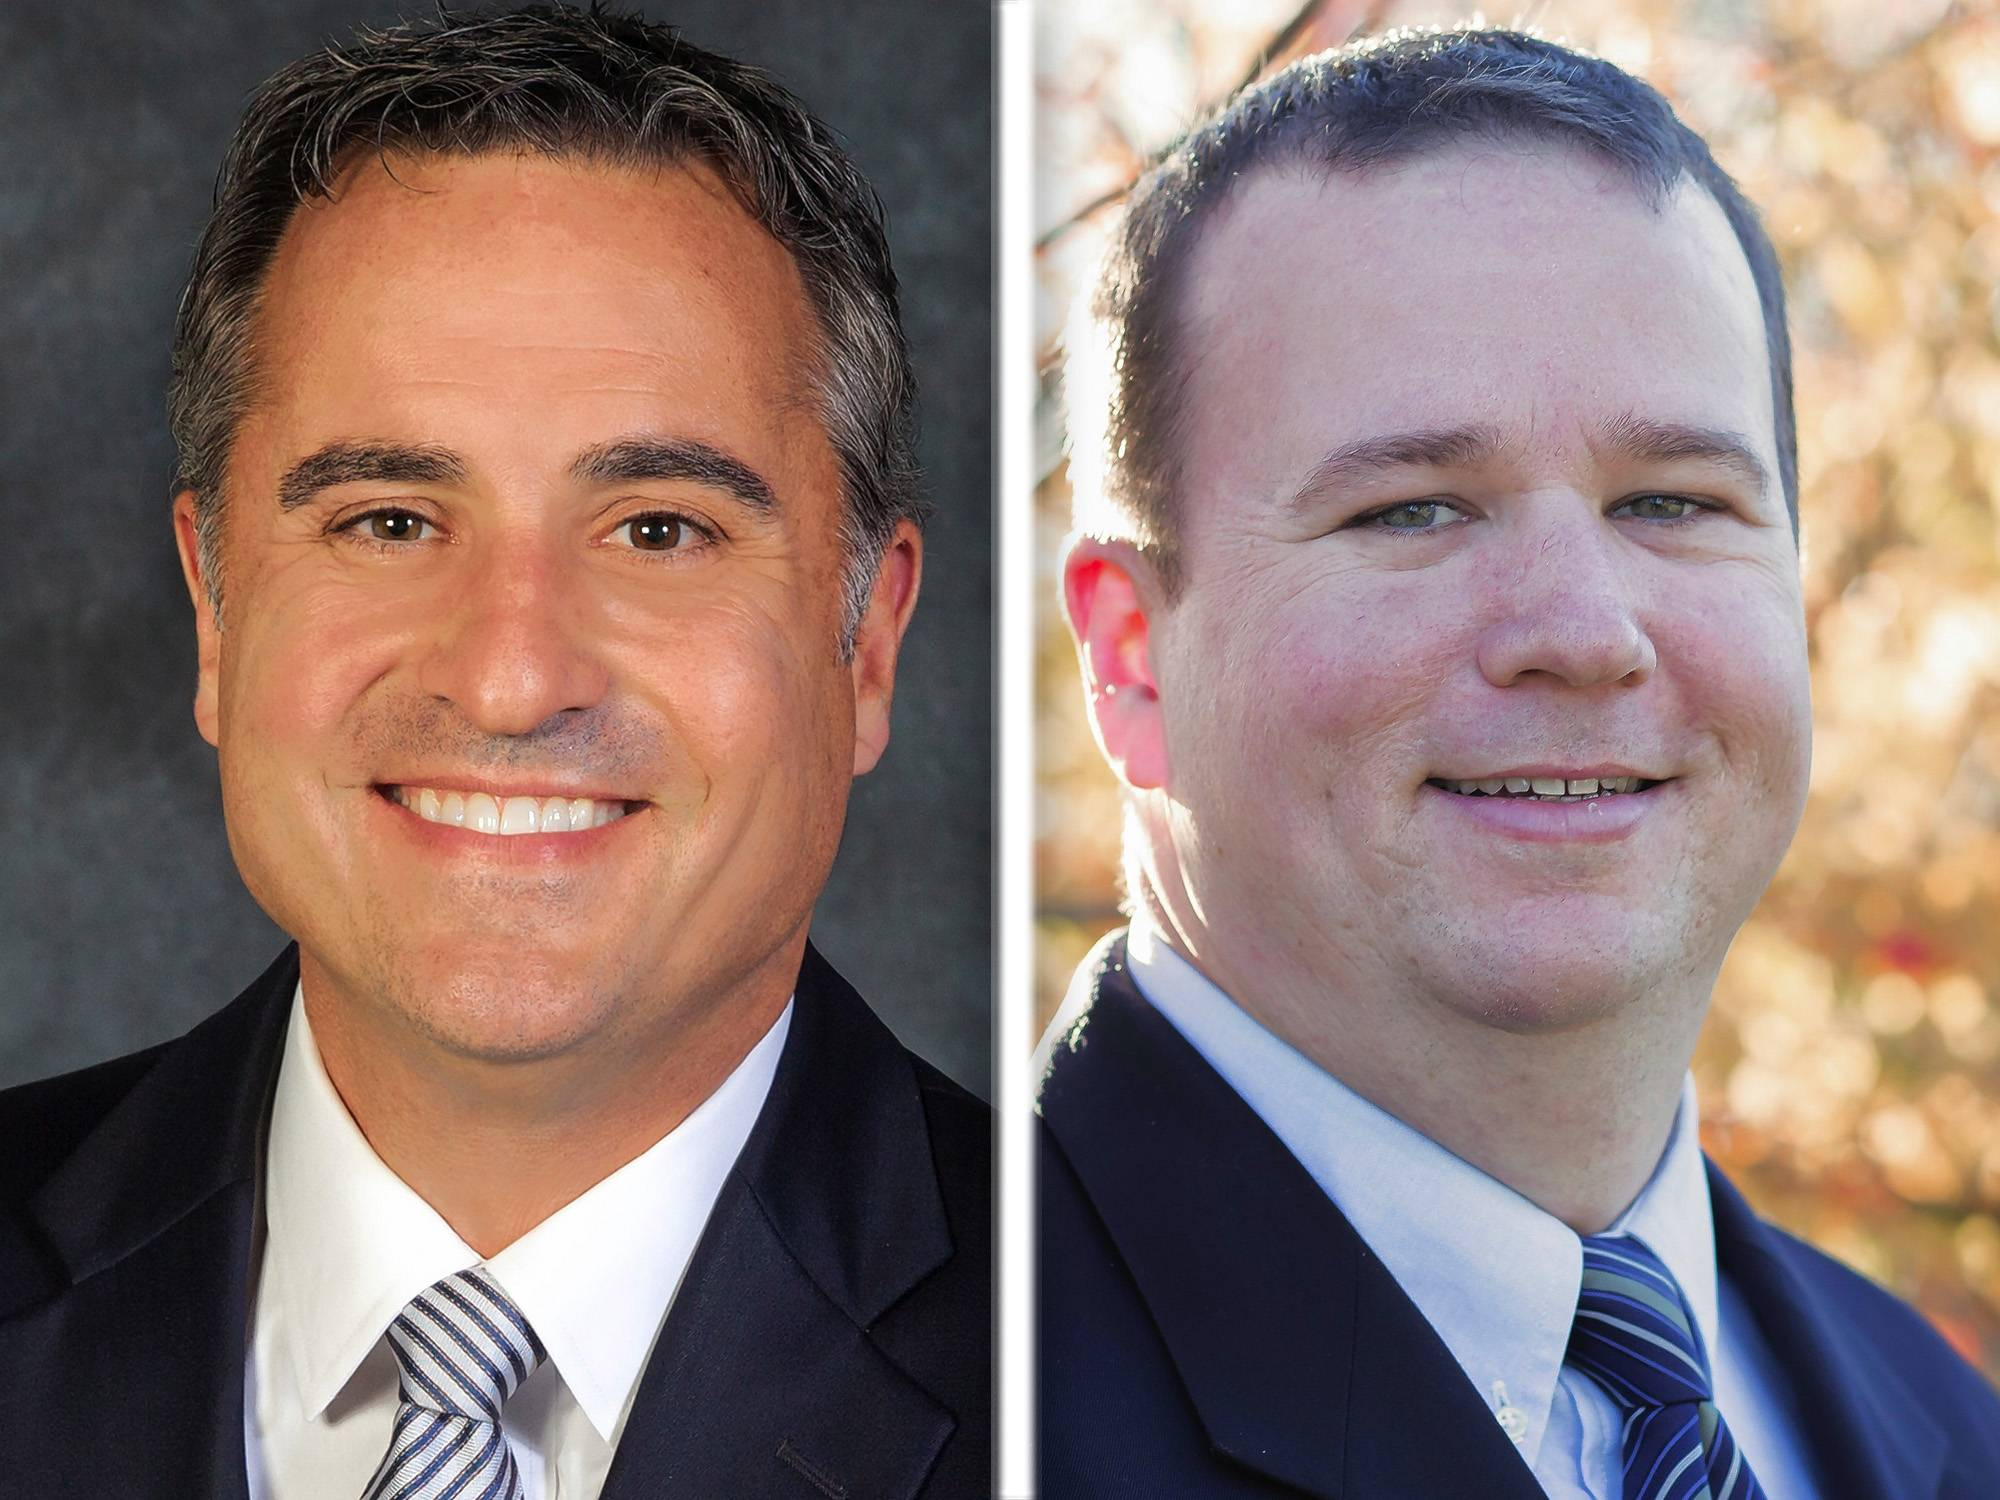 Democratic challenger Daniel Hebreard, right, has unseated Republican incumbent Joseph Cantore to become president of the Forest Preserve District of DuPage County.